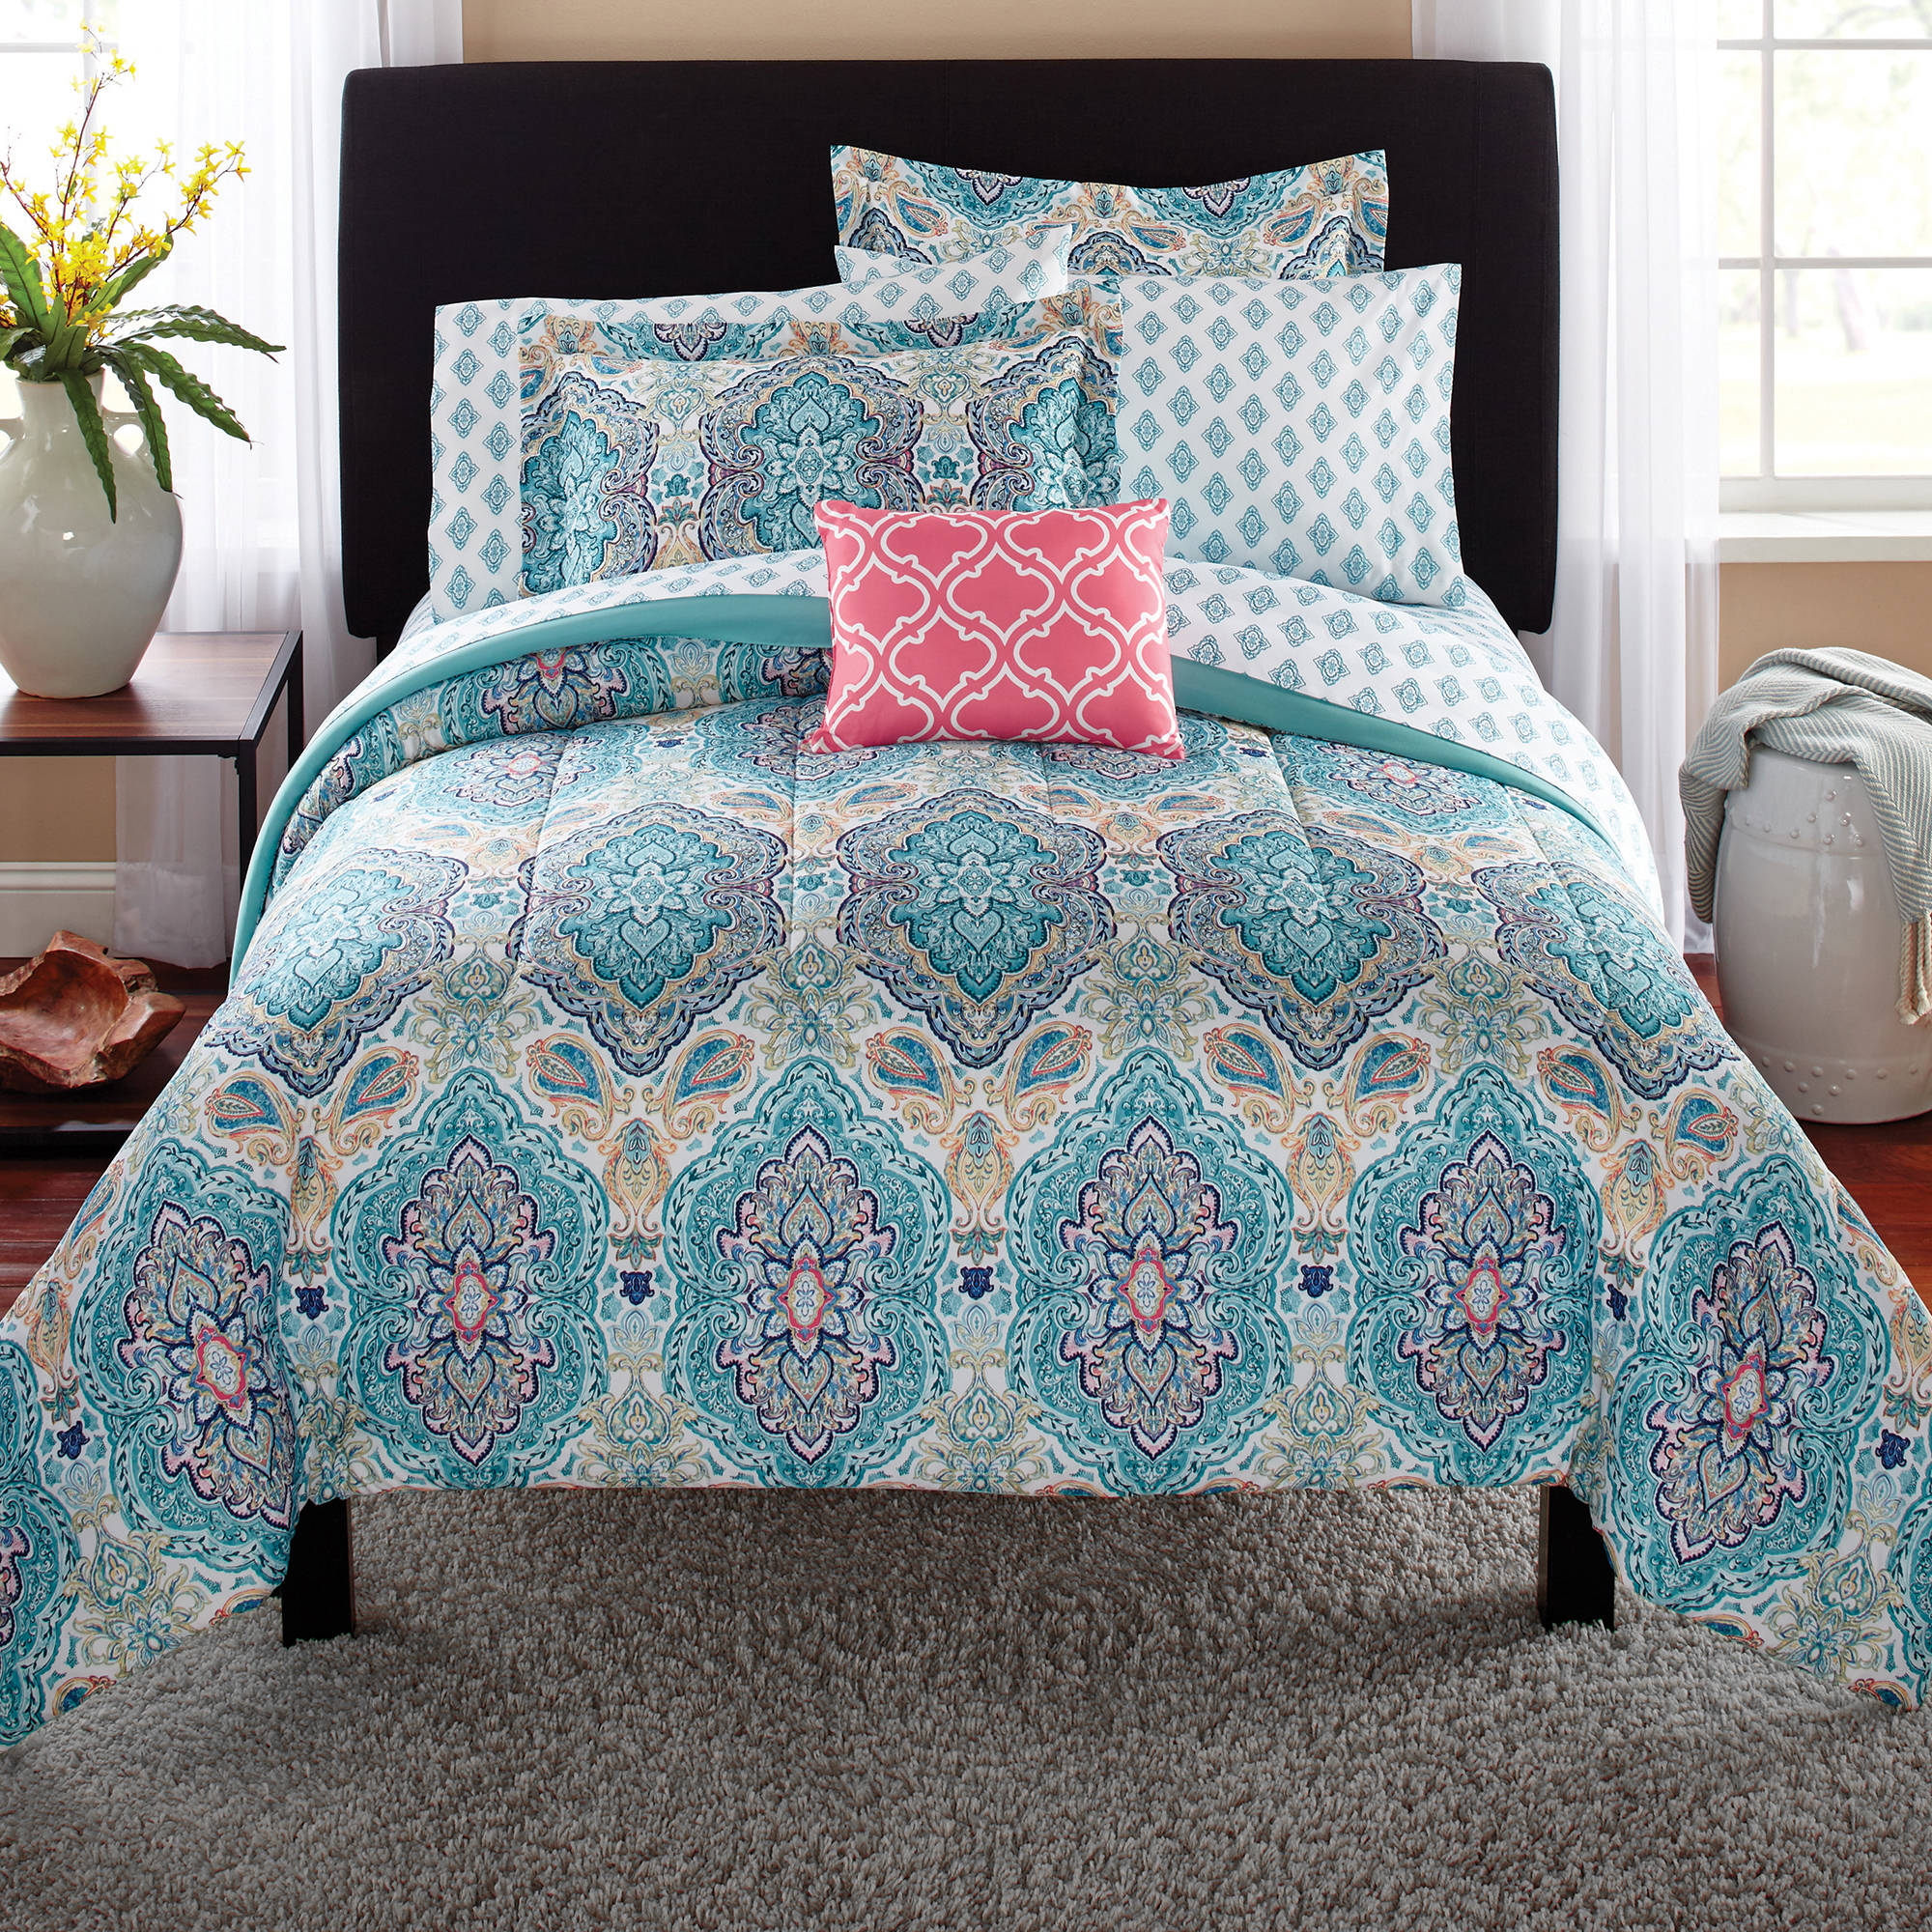 Blue and green paisley bedding - Blue And Green Paisley Bedding 8